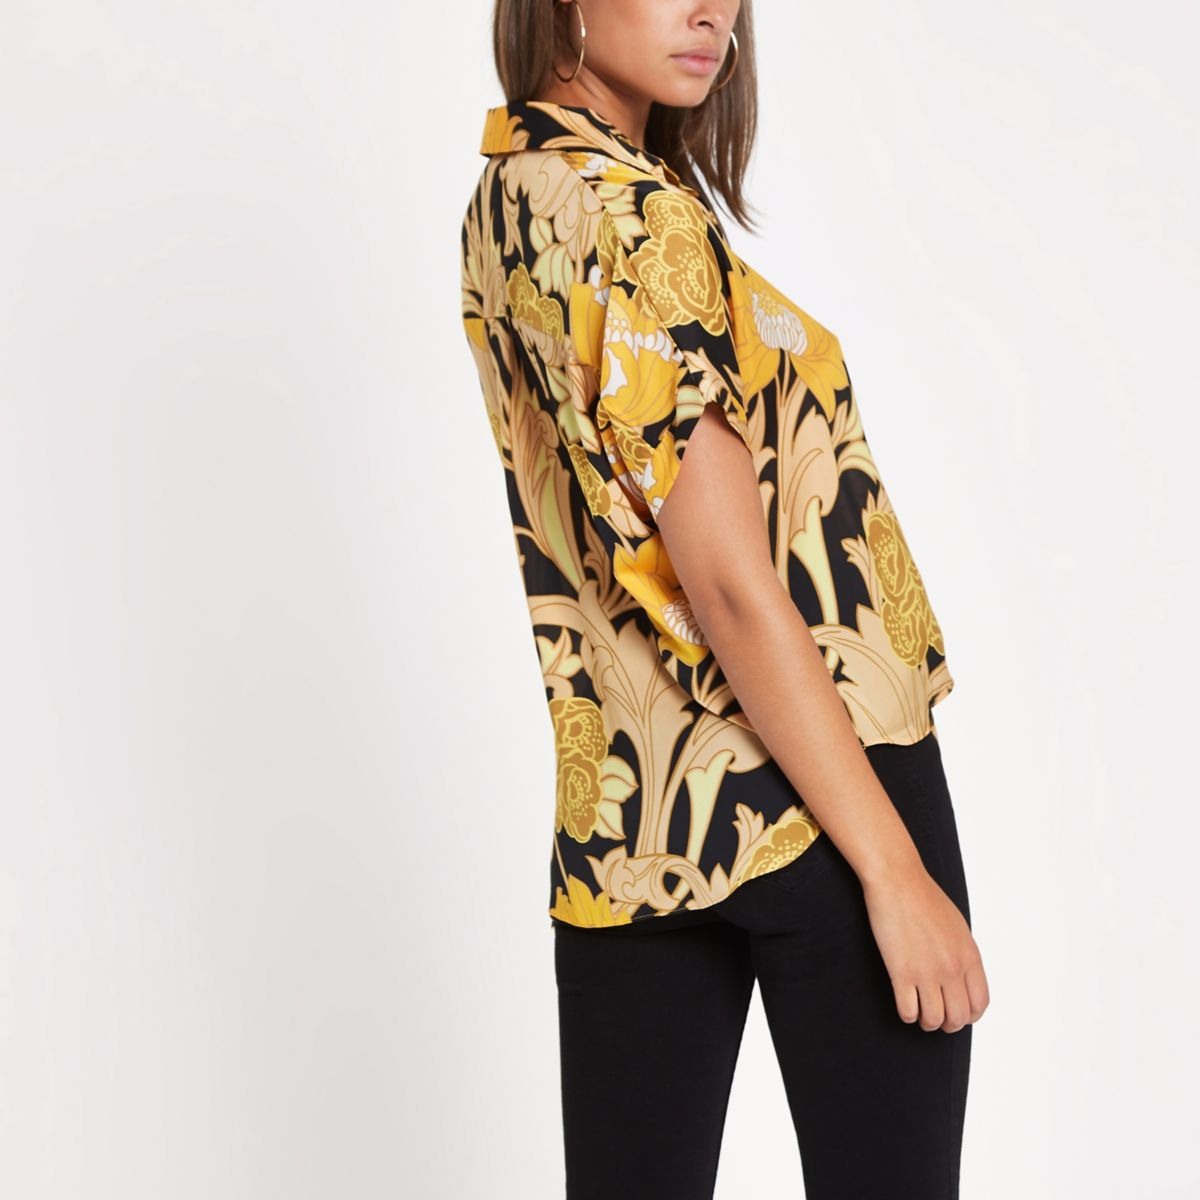 shirt tie printed Yellow floral front AqTppI